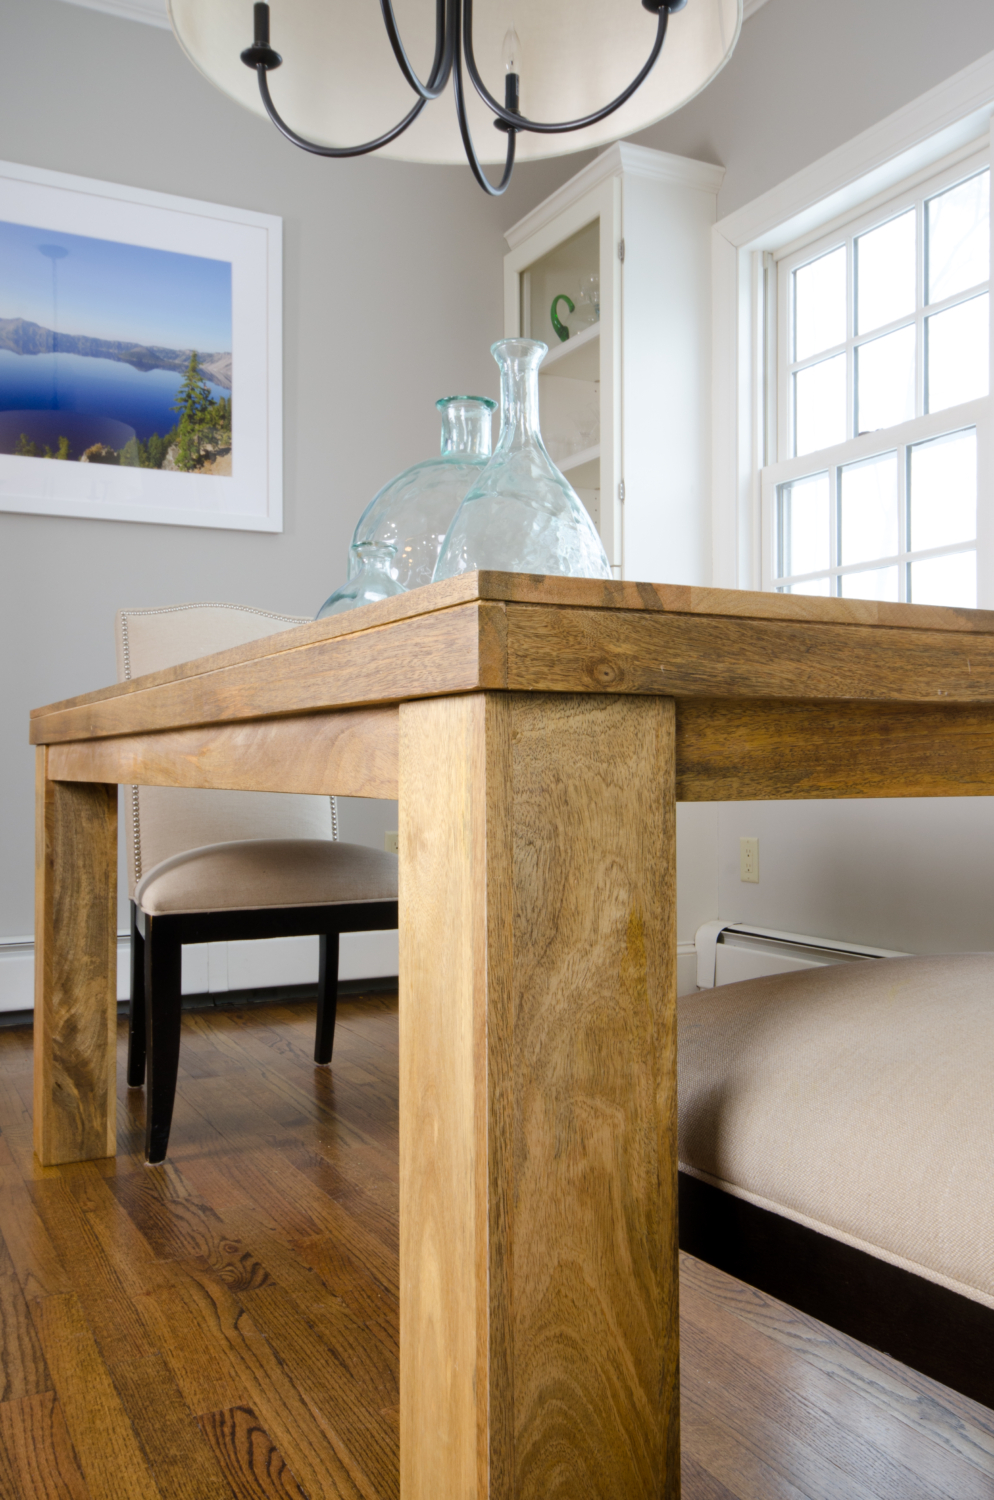 An affordable farmhouse table for under $350 with free shipping. See how it fits into plans for a stylish, family-friendly breakfast nook.